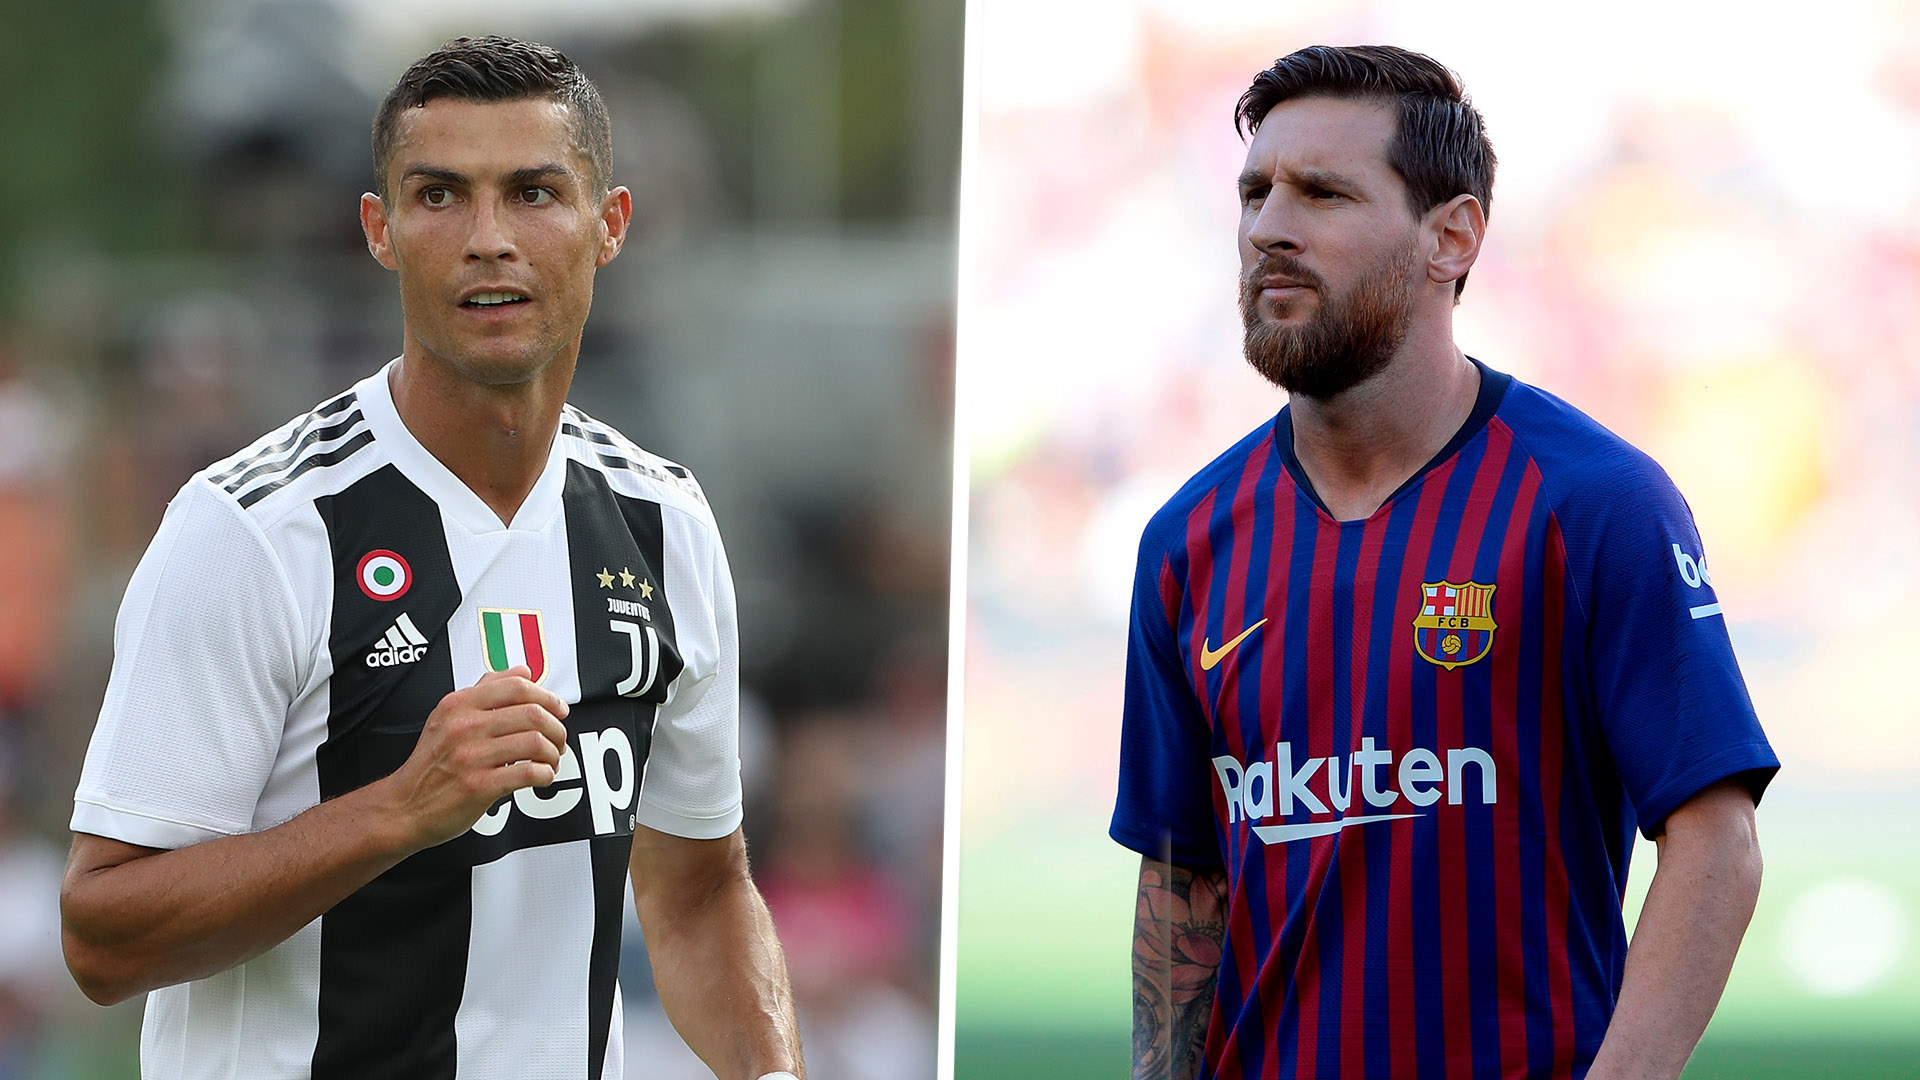 Cristiano Ronaldo claims FIFA 19 bragging rights over Lionel Messi